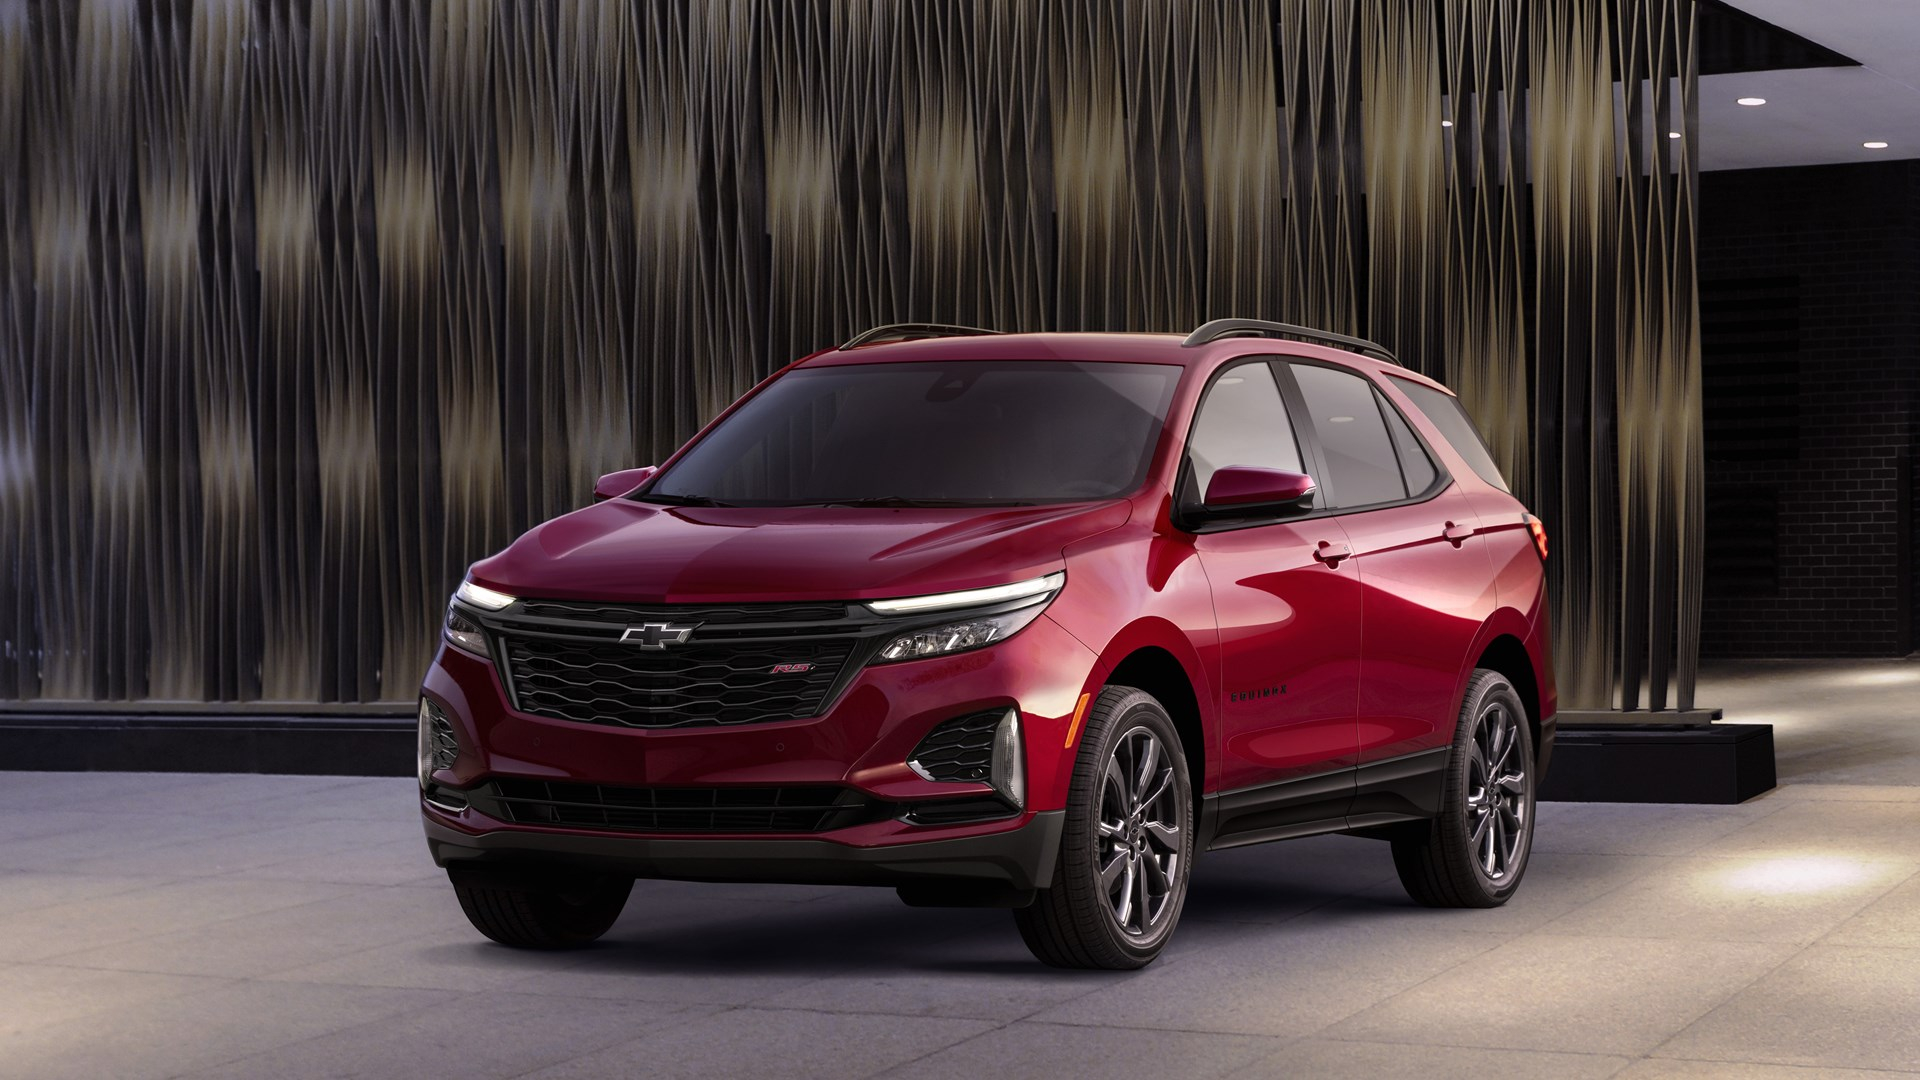 2021 Chevy Equinox Gets Facelift And New Rs Trim | Autotrader.ca 2021 Chevy Traverse Rs Review, Awd, Awd Review